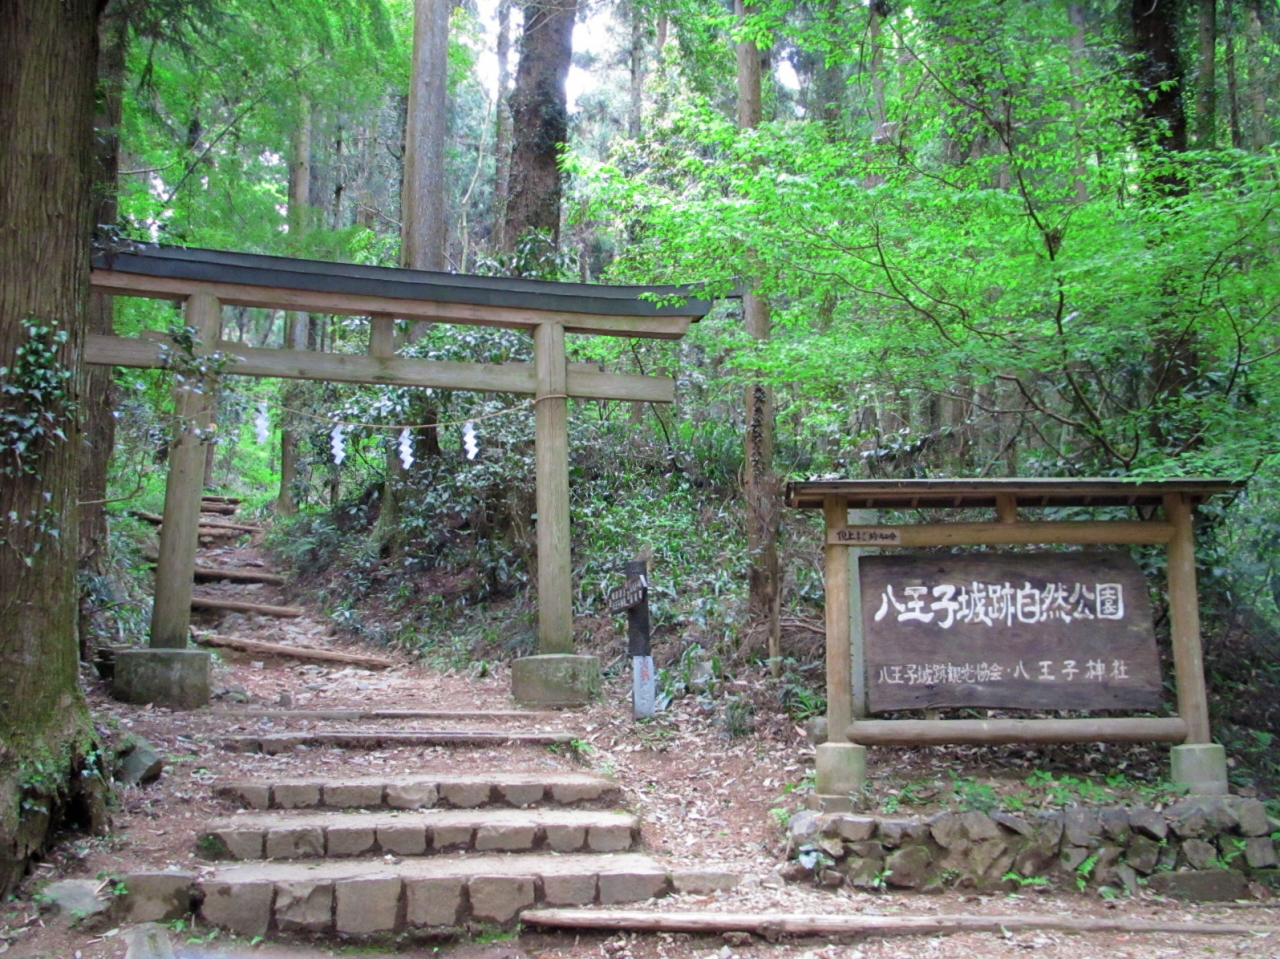 hachioji singles Build your custom hachioji itinerary using our trip planner and have a great  hachioji trip planner  visit a single location or make it a multi-destination.